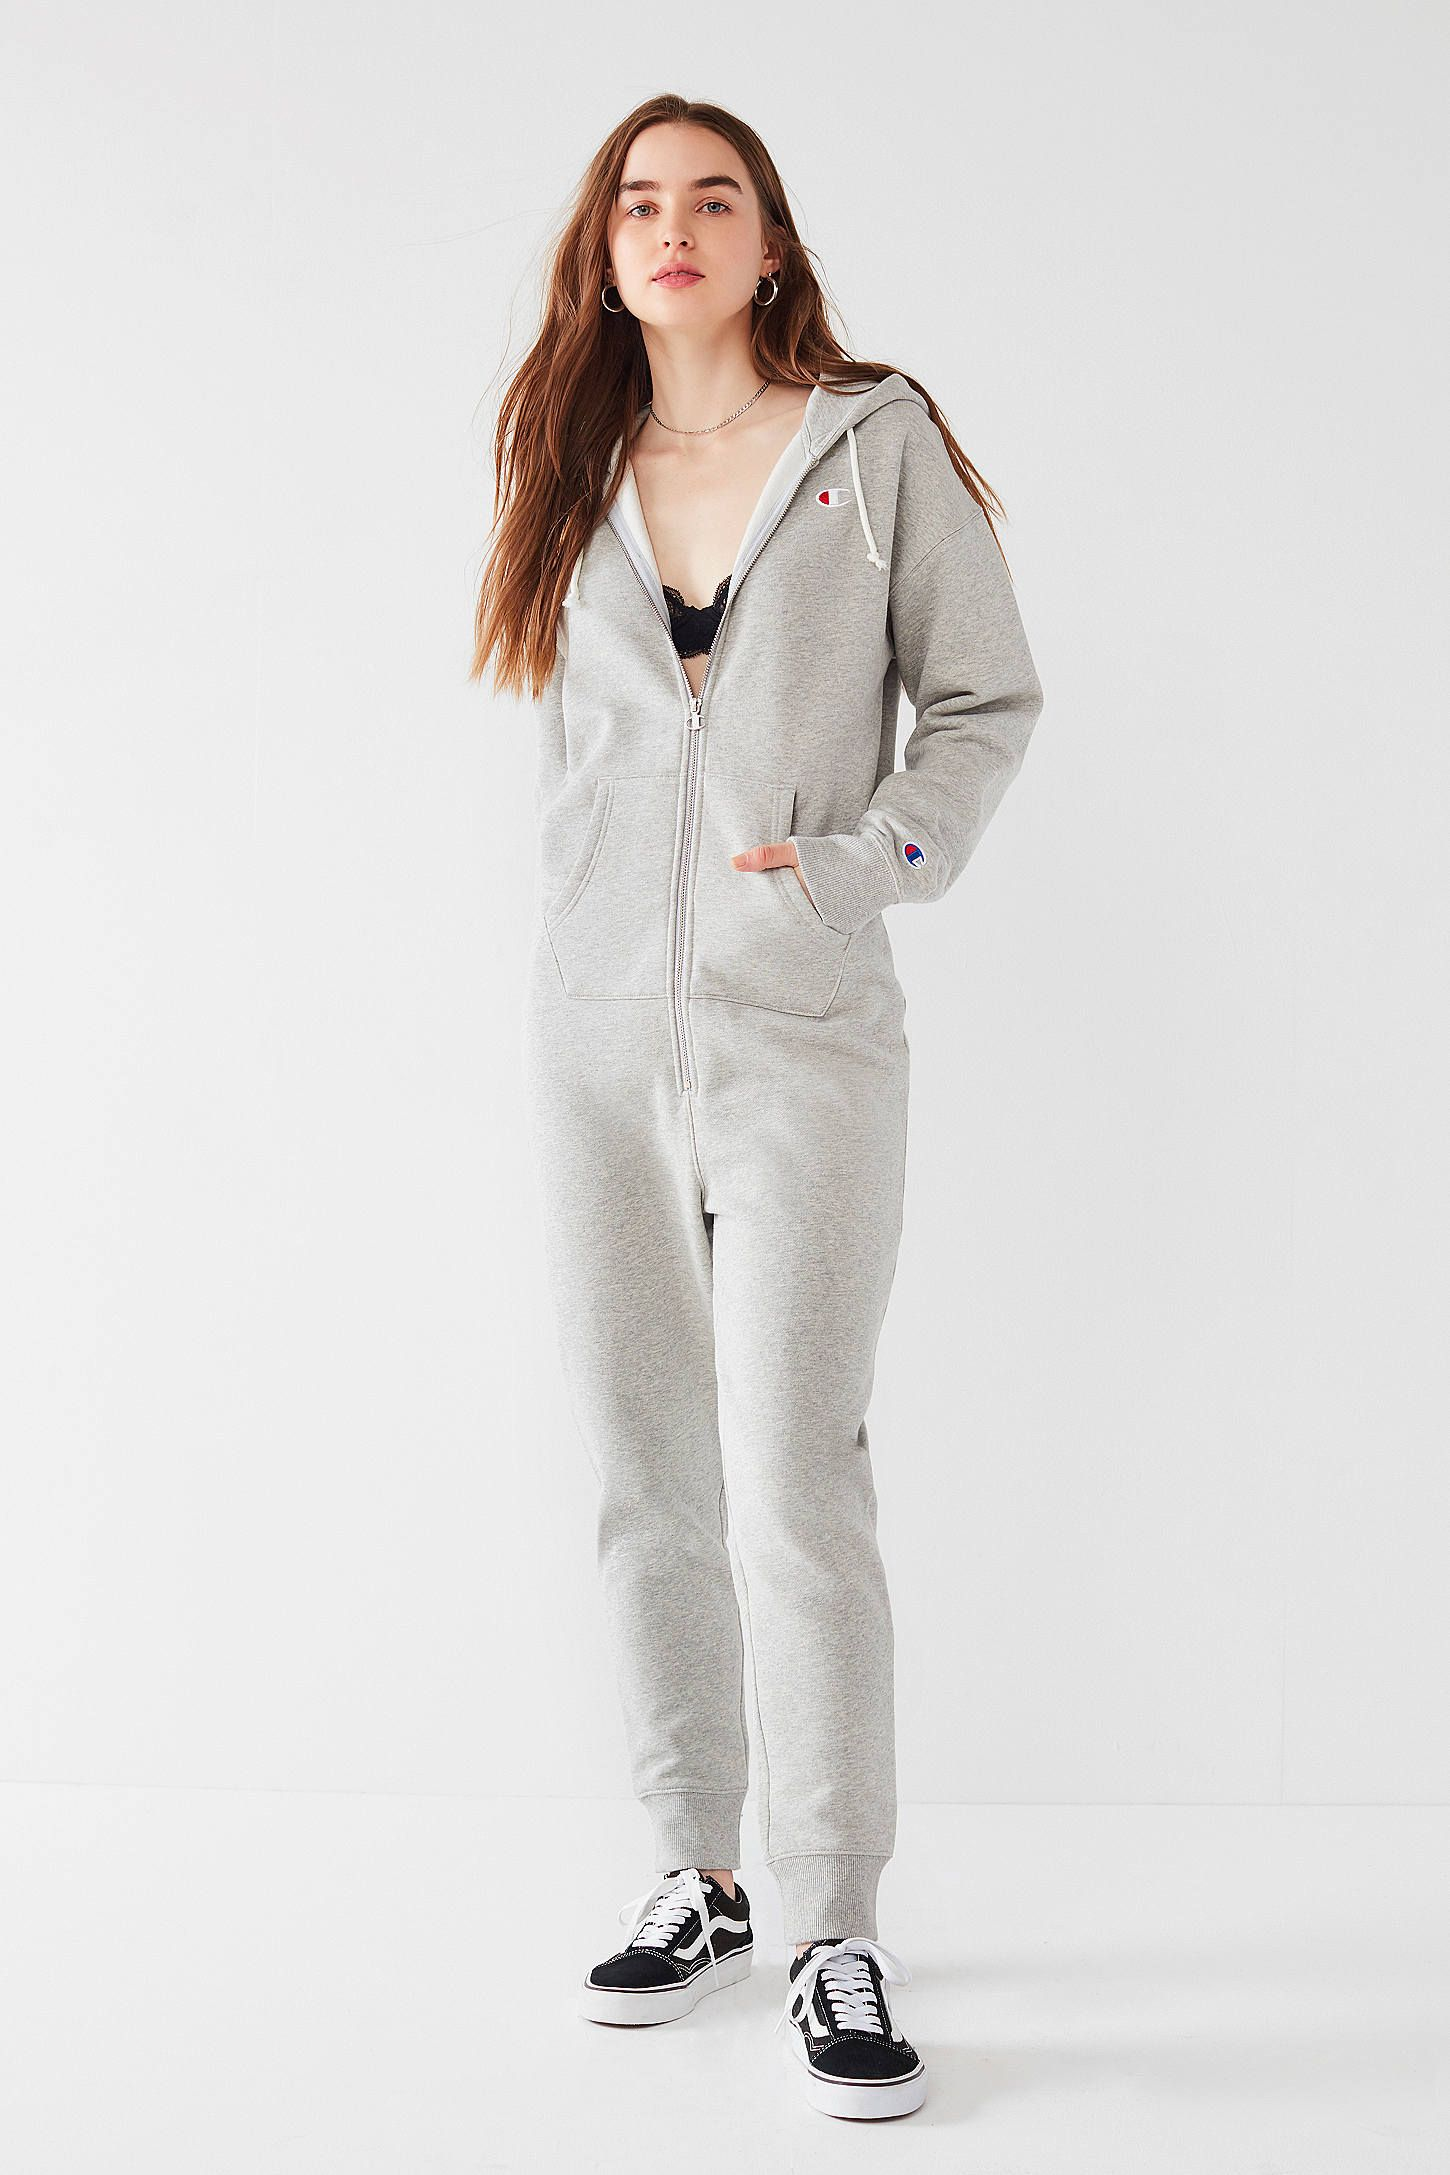 1664cf3477dfd4 Shop Champion & UO Sweatshirt Jumpsuit at Urban Outfitters today. We carry  all the latest styles, colors and brands for you to choose from right here.